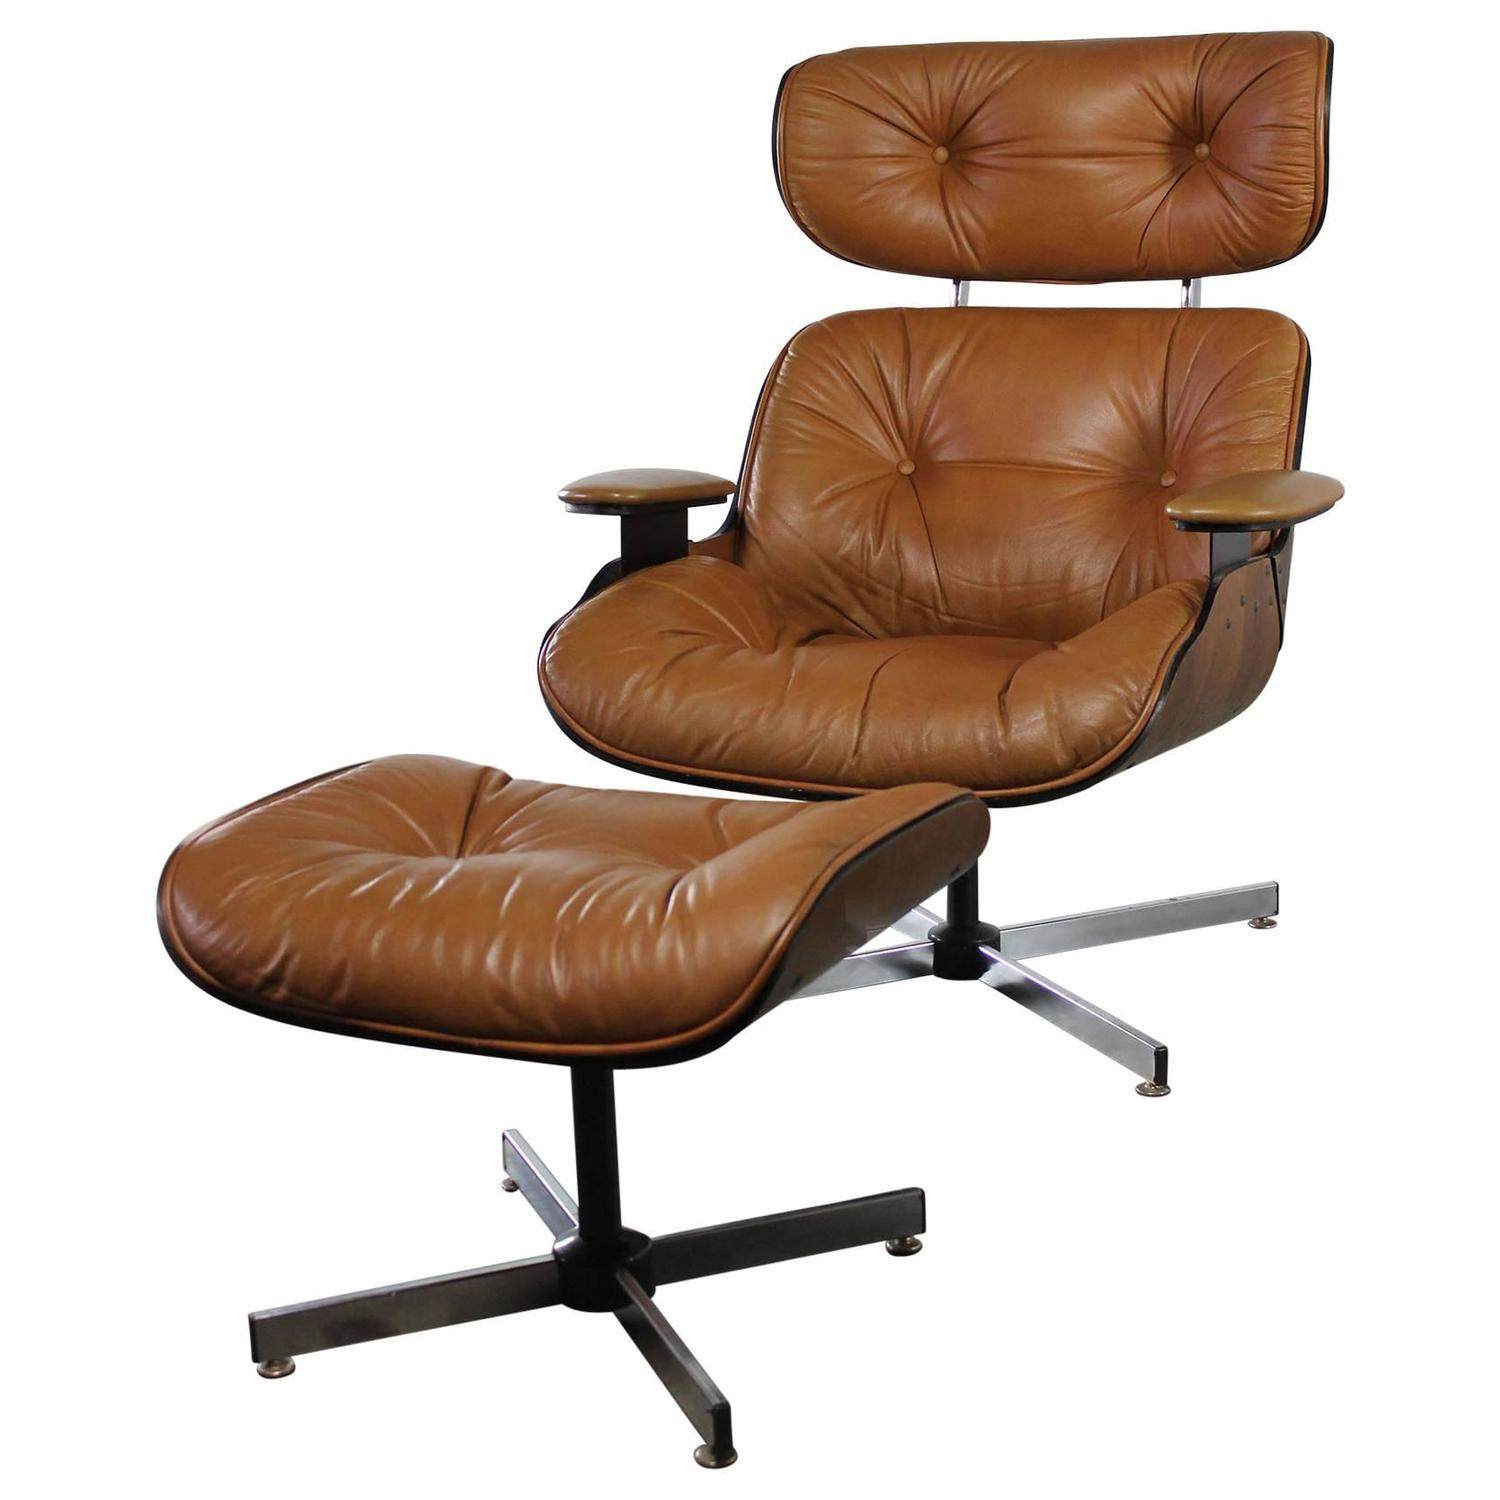 mid century modern plycraft eames style lounge chair and ottoman for sale at 1stdibs. Black Bedroom Furniture Sets. Home Design Ideas